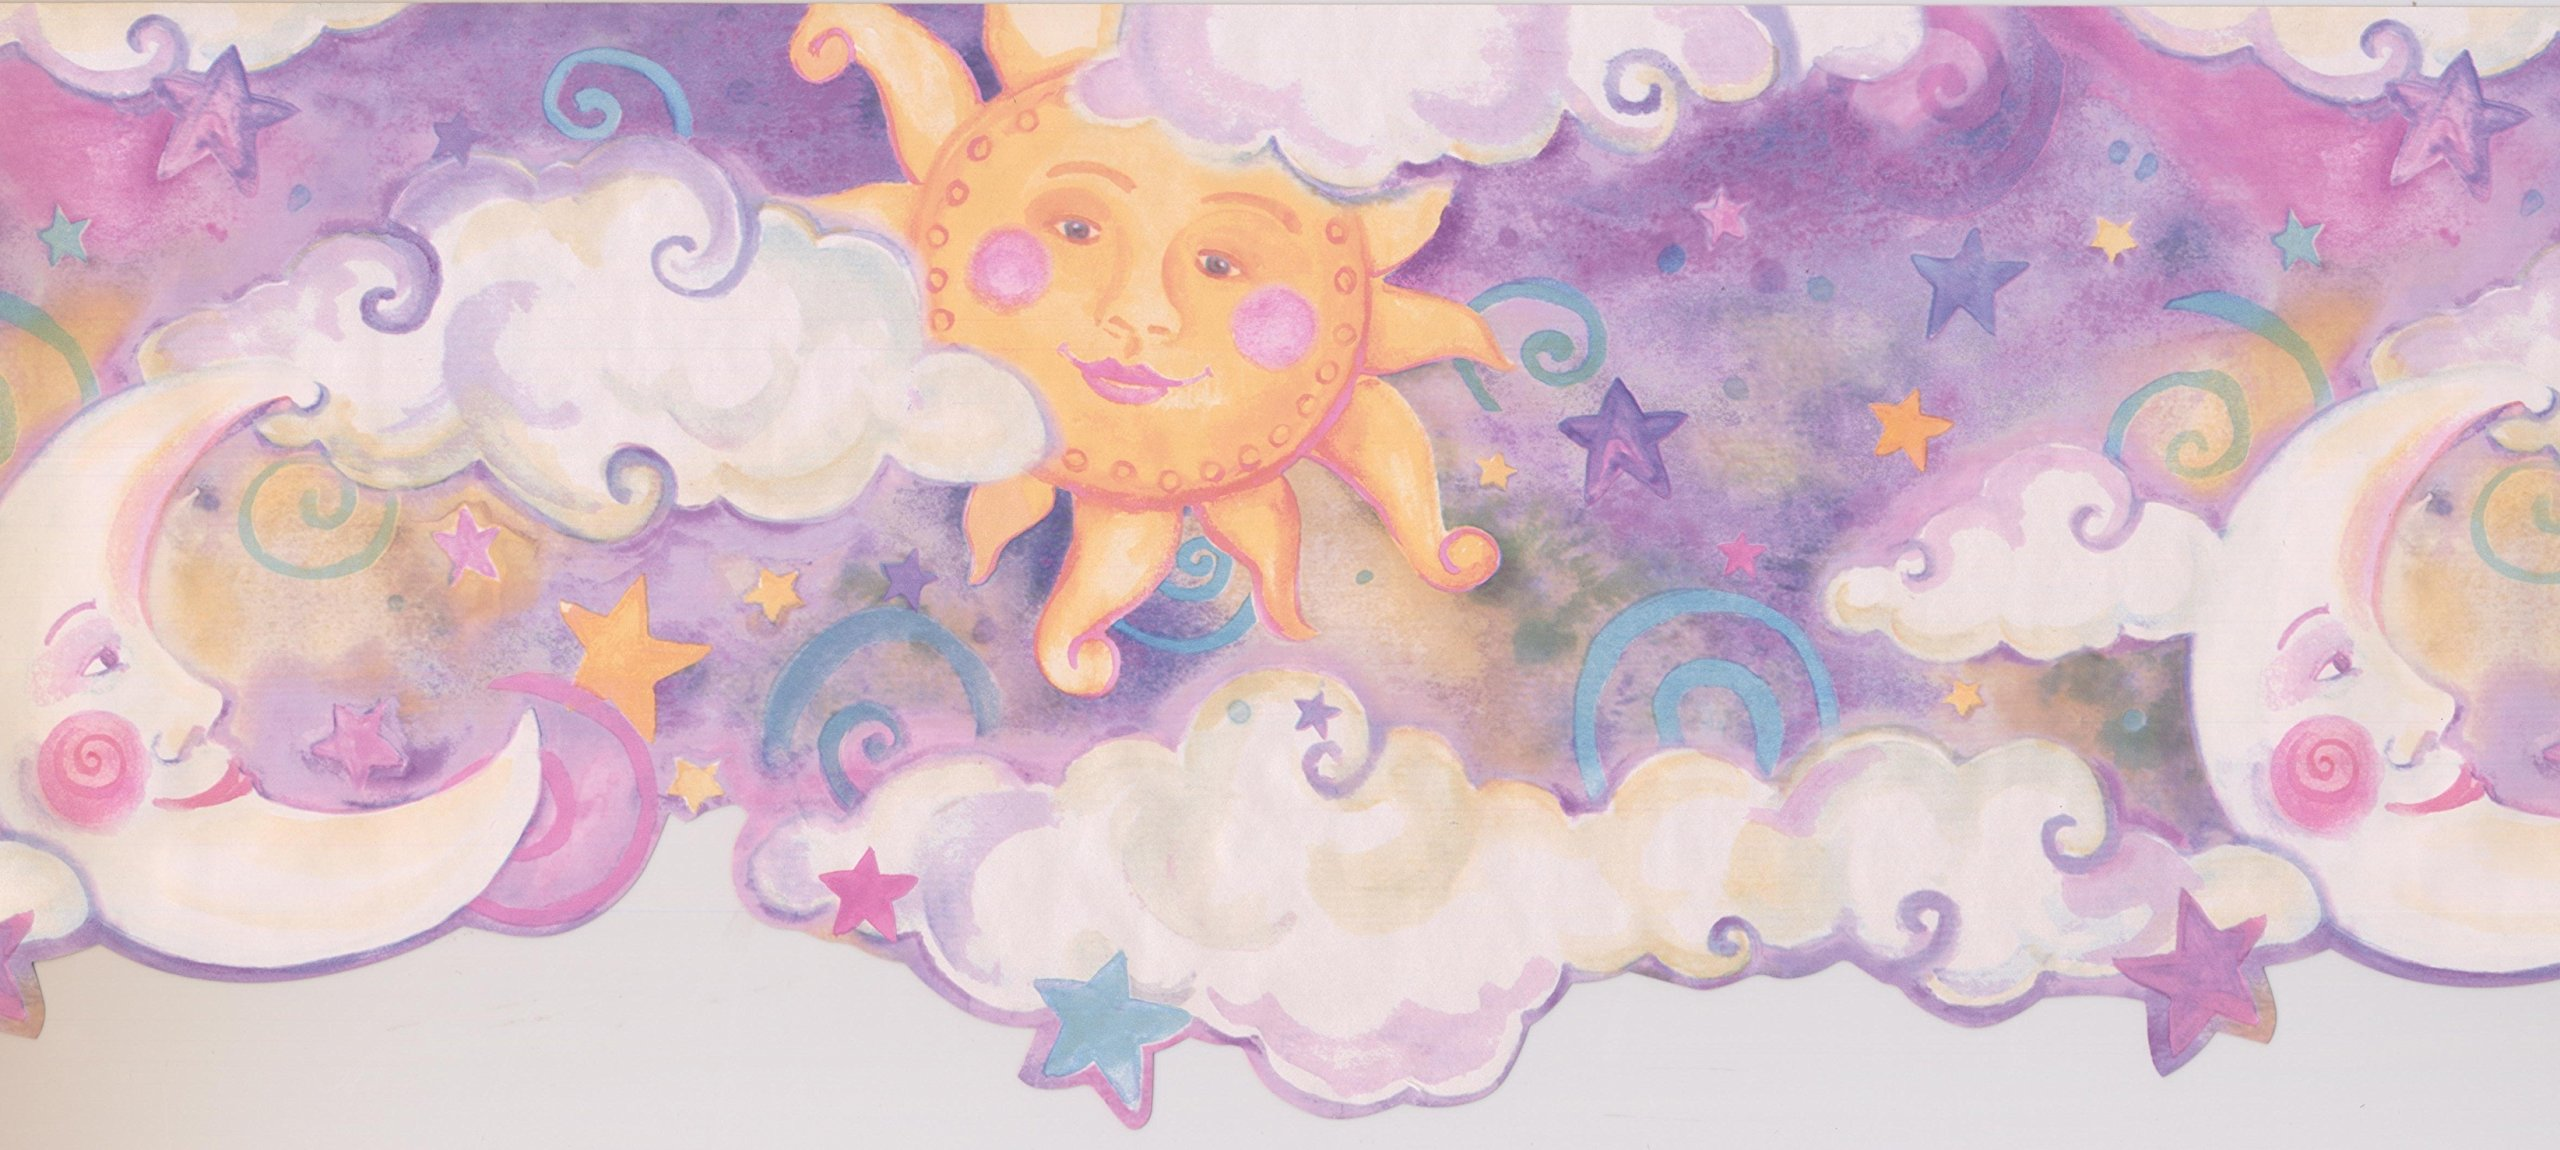 Wallpaper Border - Sun Moon Star Wallpaper Border 1193 KZ